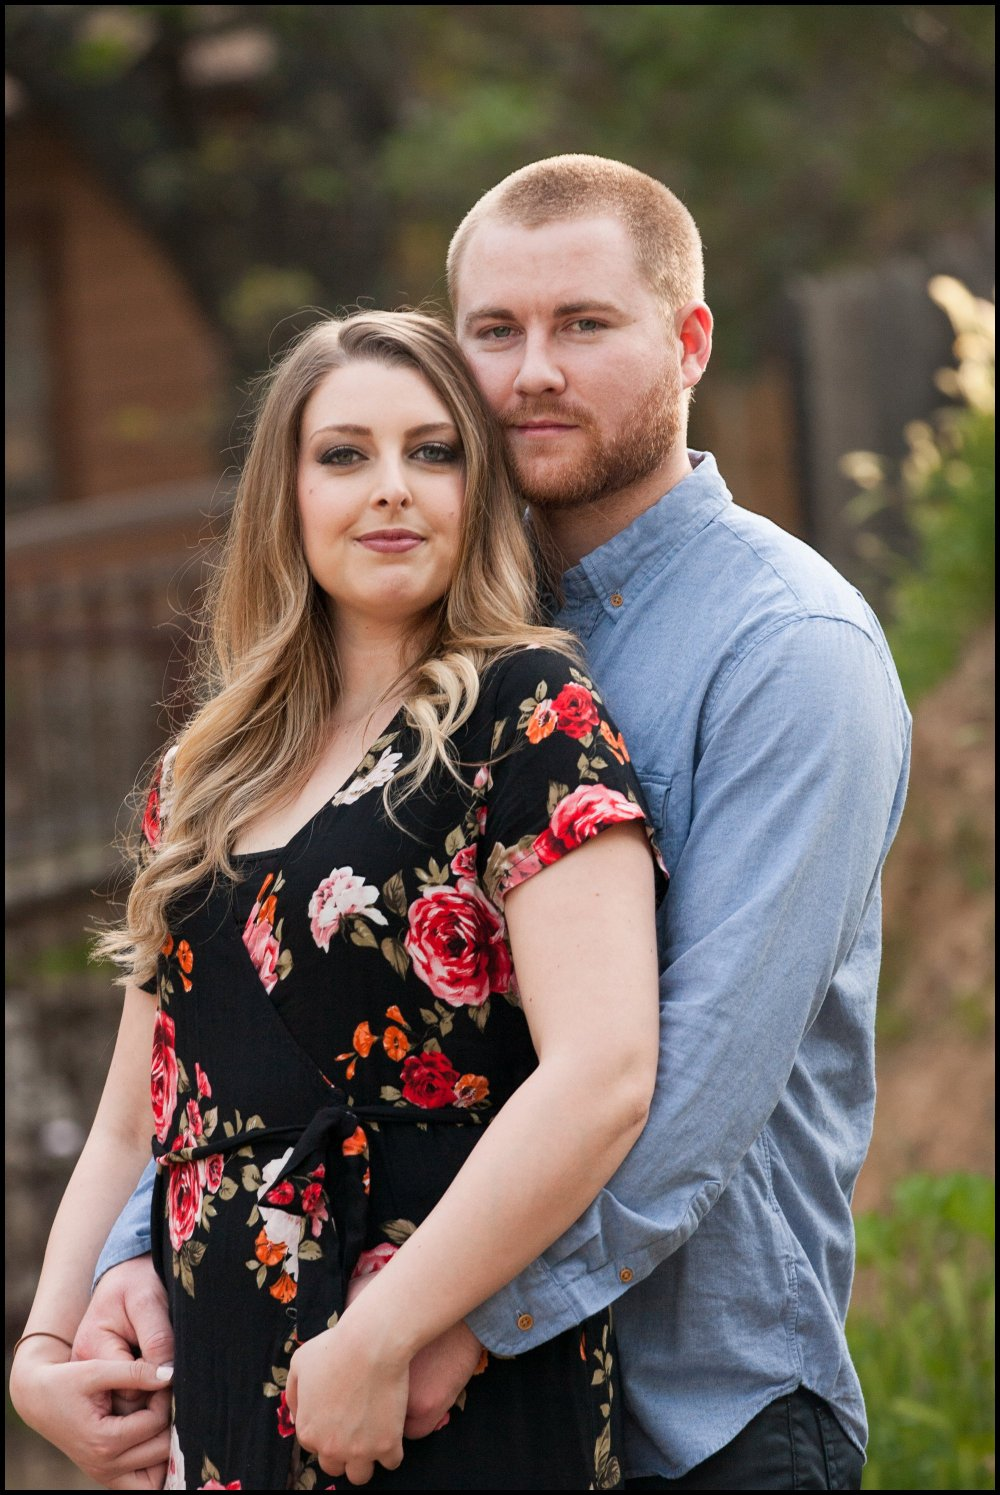 cassia_karin_photography_cj_hillary_simi_valley_california_engagement_shoot_tunnel_trees_love-44.jpg